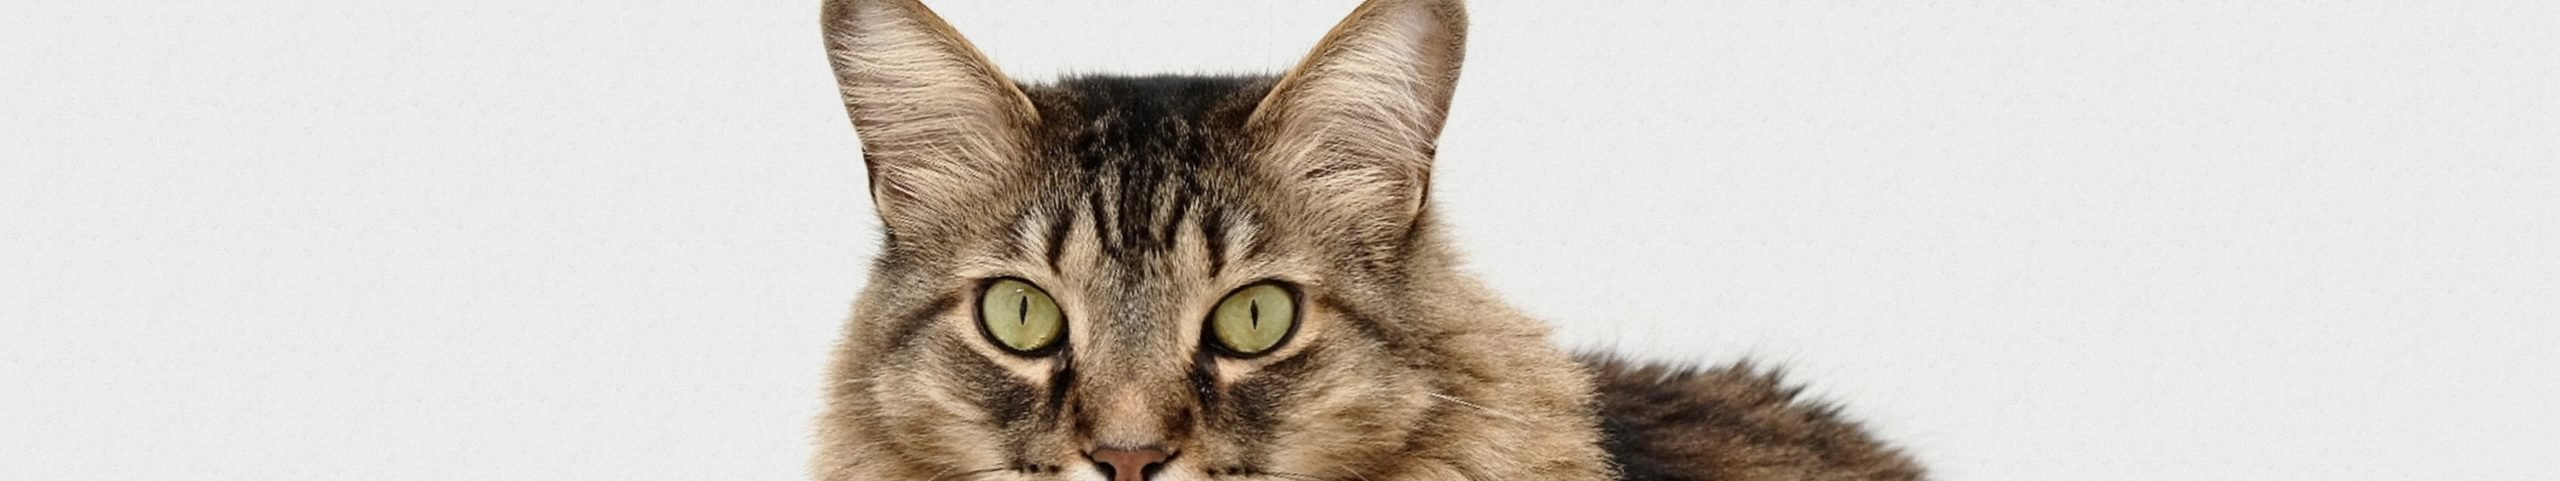 cat green eyes grey background looking at viewer